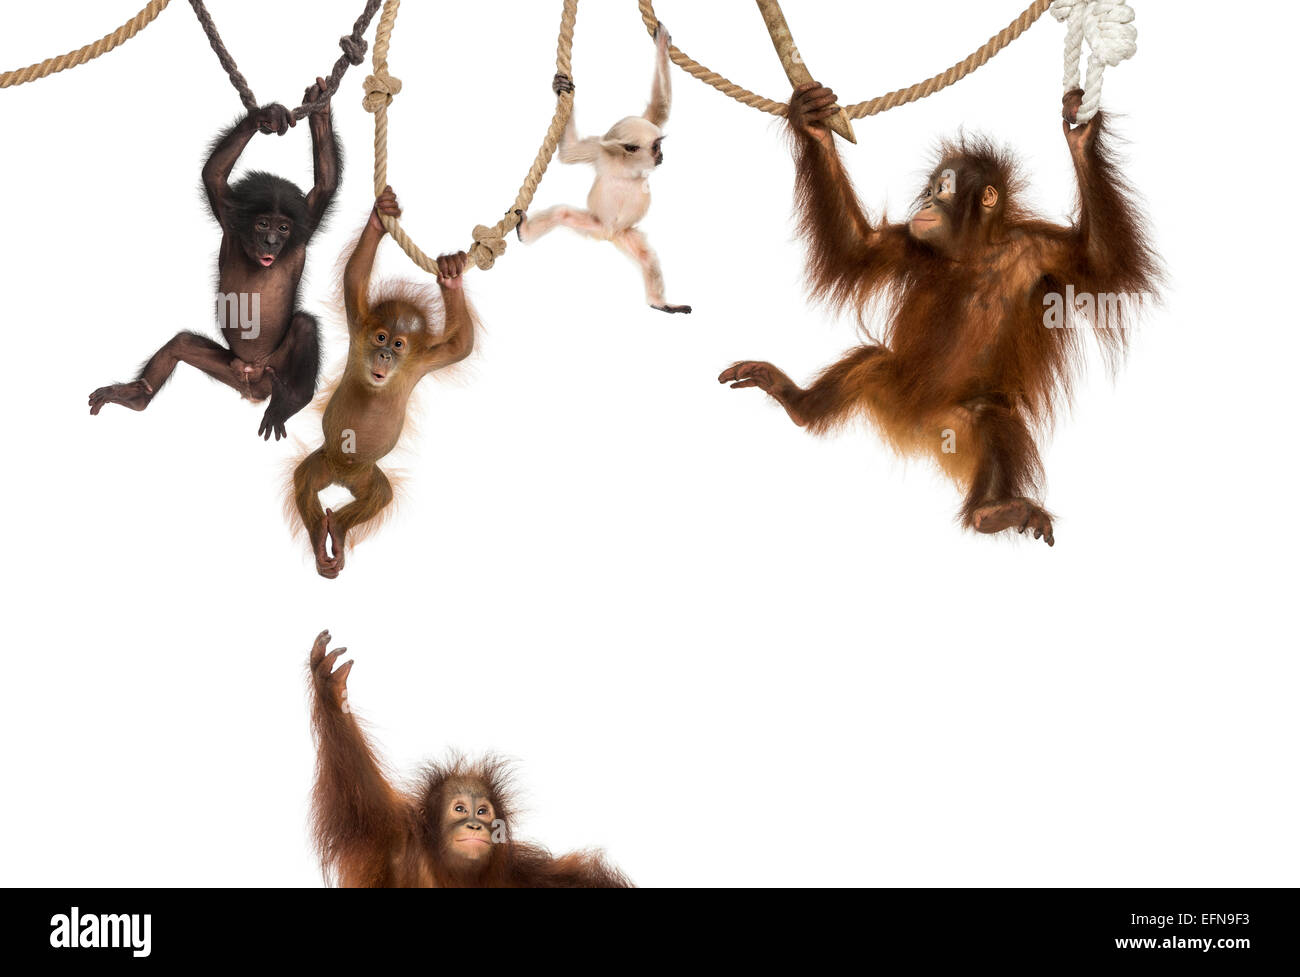 Young Orangutan, Young Pileated Gibbon and Young Bonobo hanging on ropes against white background - Stock Image